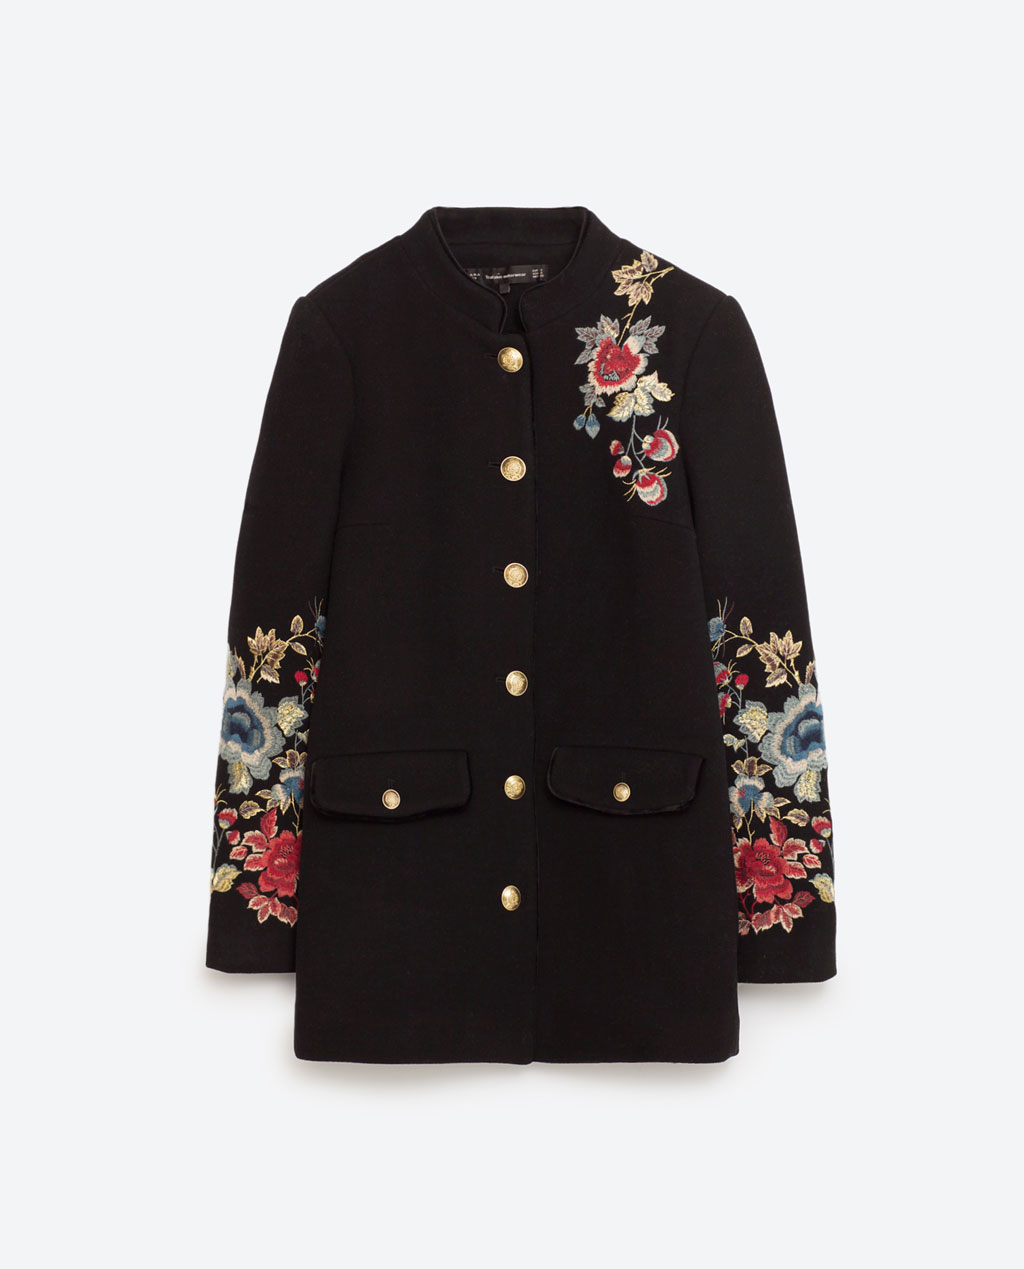 http://www.zara.com/us/en/sale/woman/outerwear/view-all/floral-military-style-coat-c731509p4334003.html